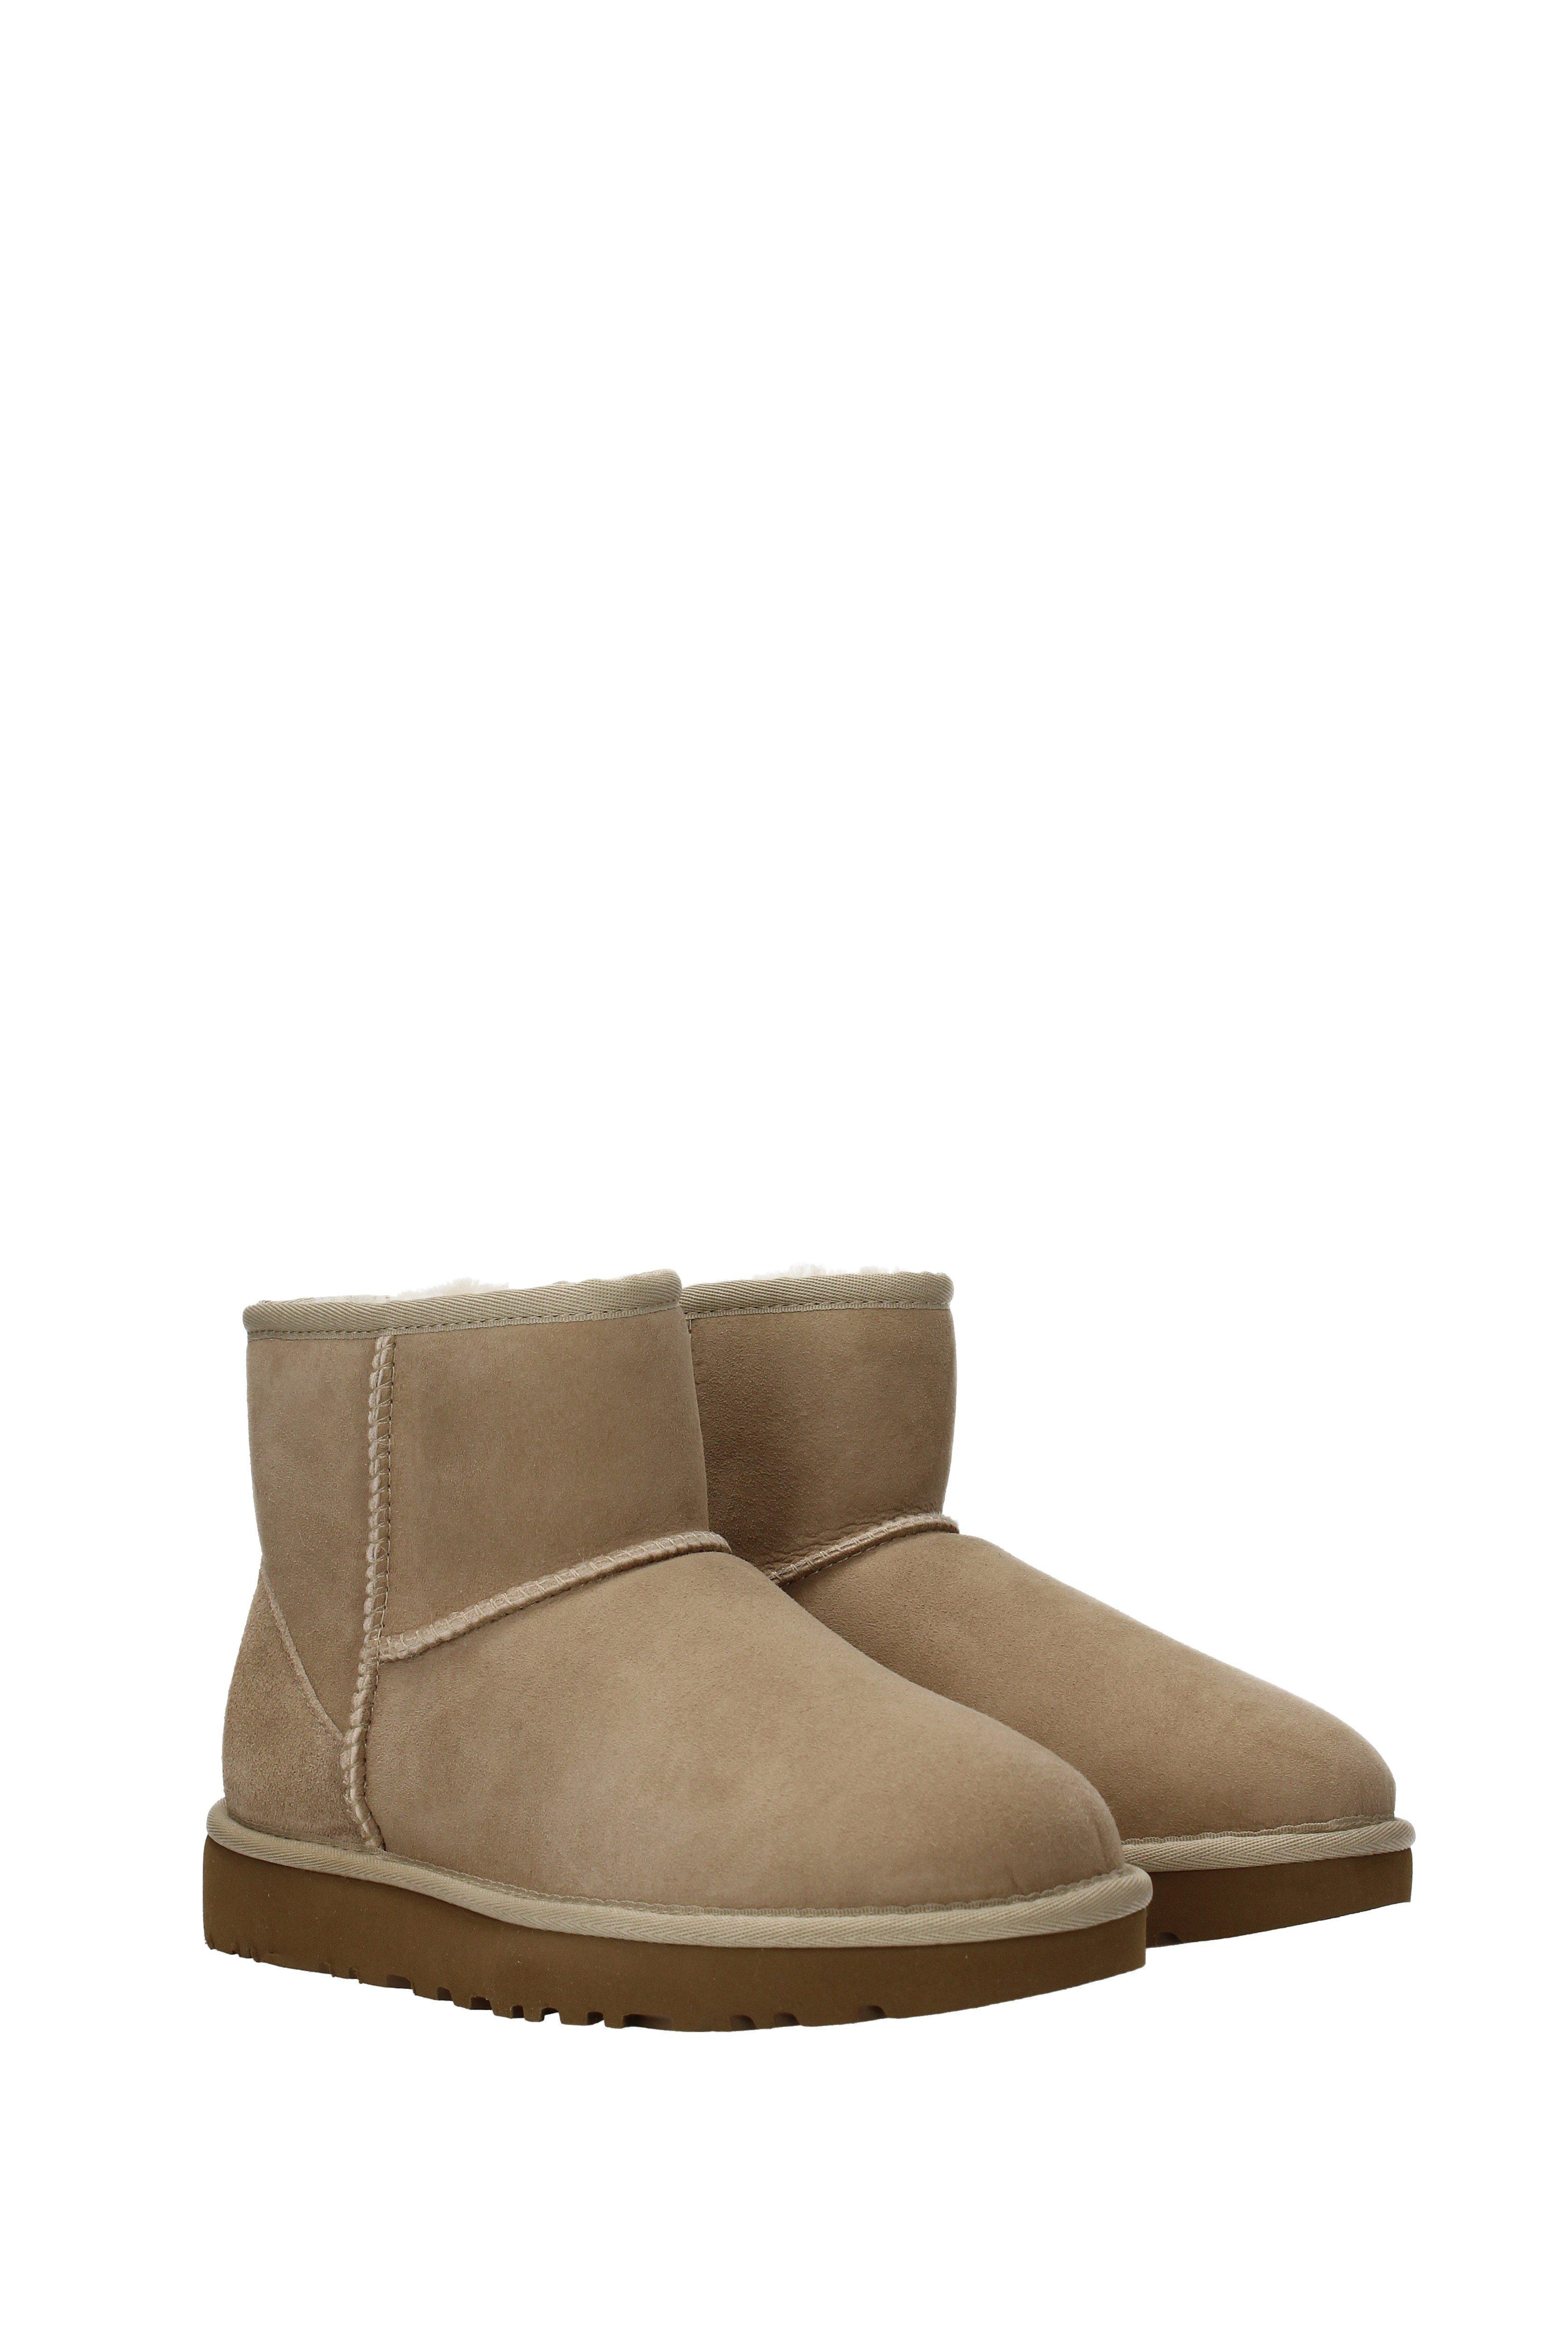 8aa6fe38e71 Natural Ankle Boots Water Resistant Classic Mini Ii Women Beige